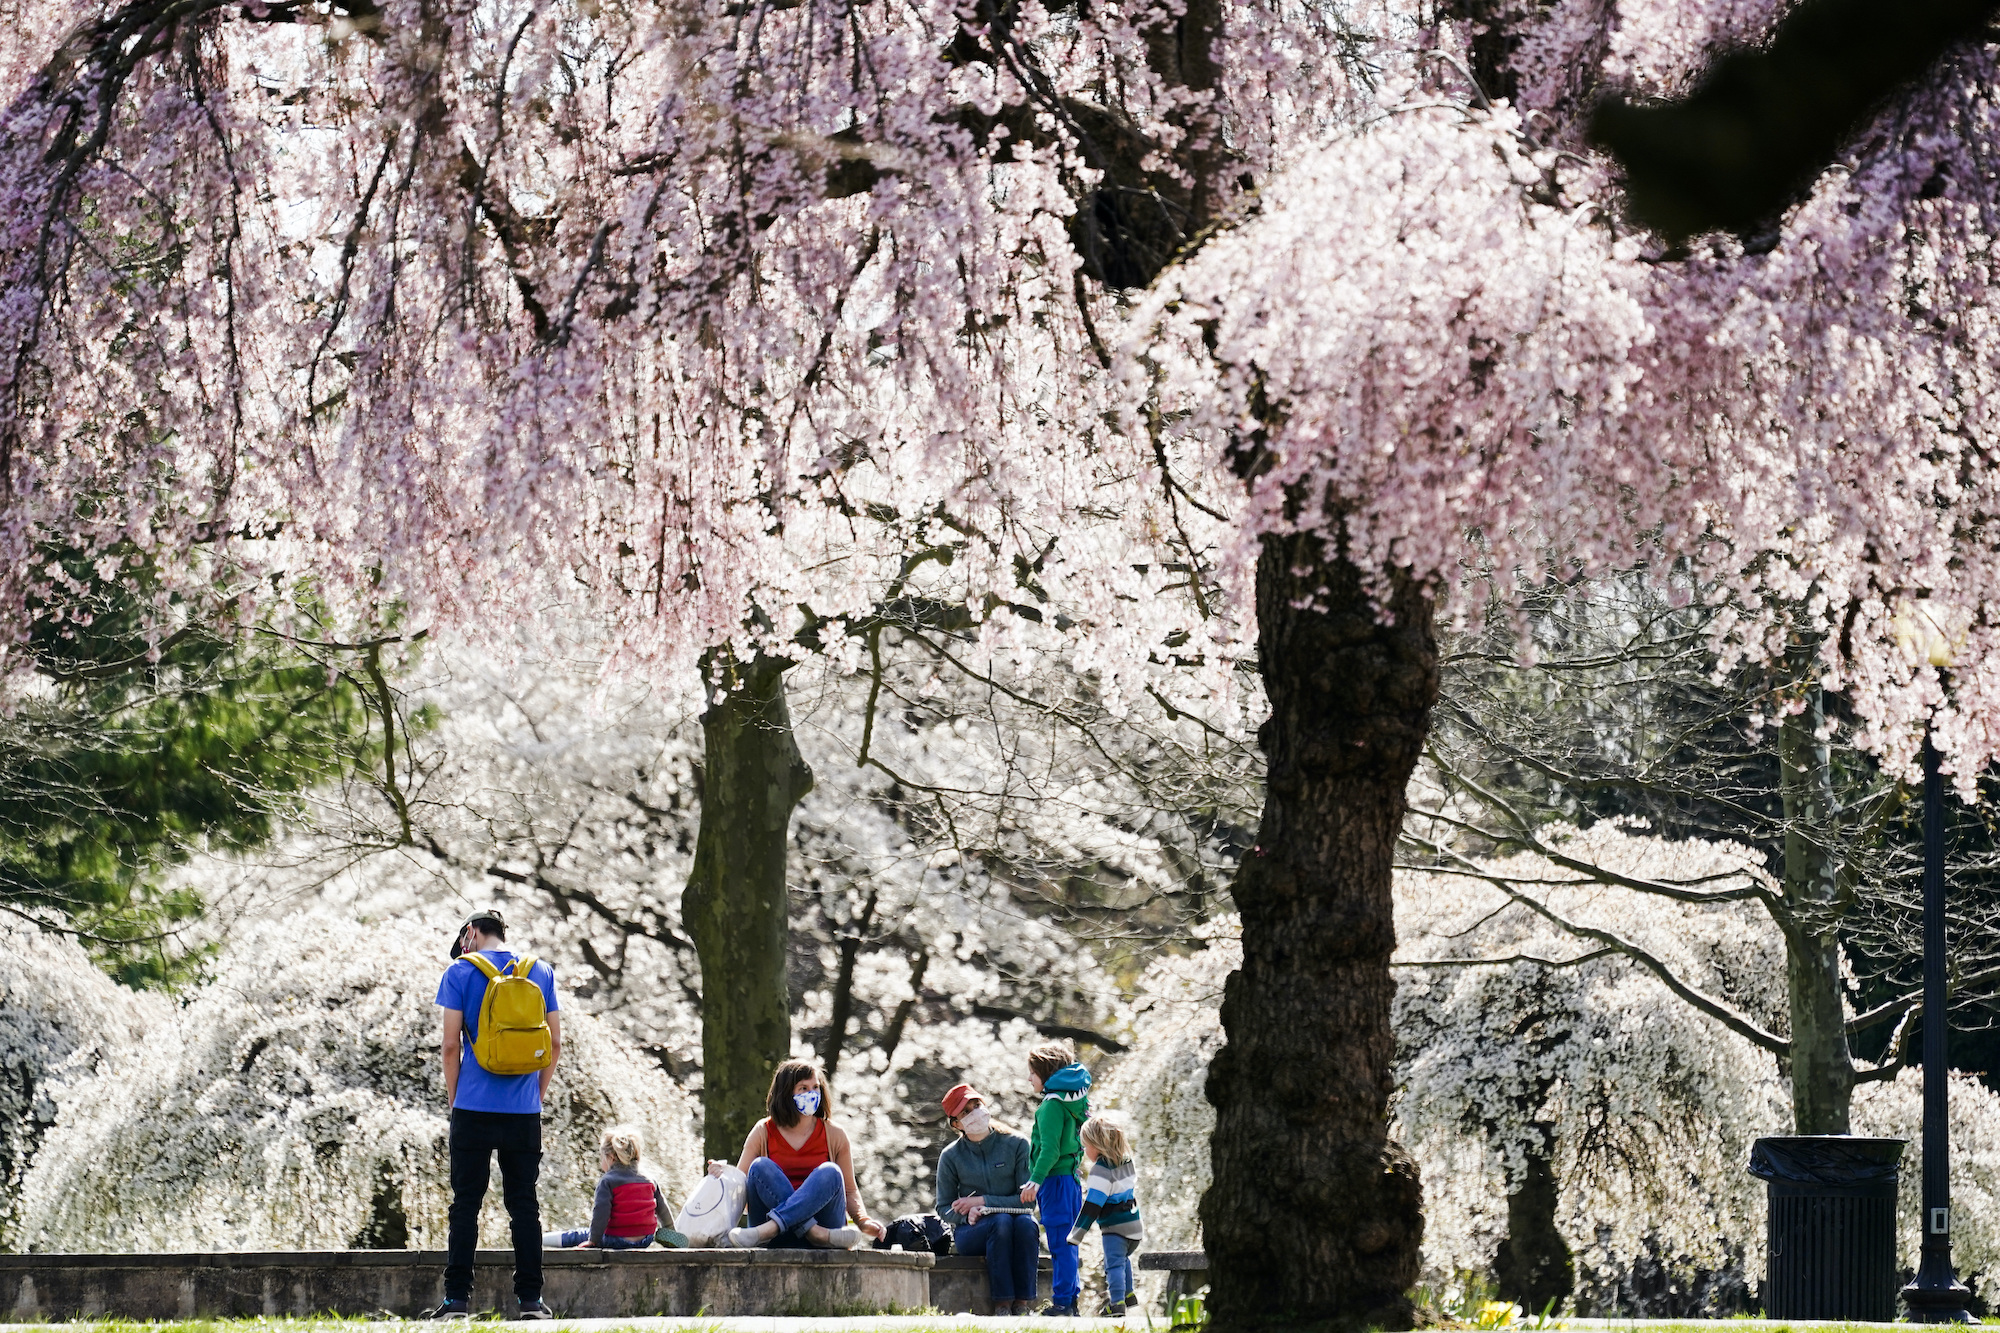 People wearing face masks gather amongst blooming cherry trees at the Fairmount Park Horticulture Center